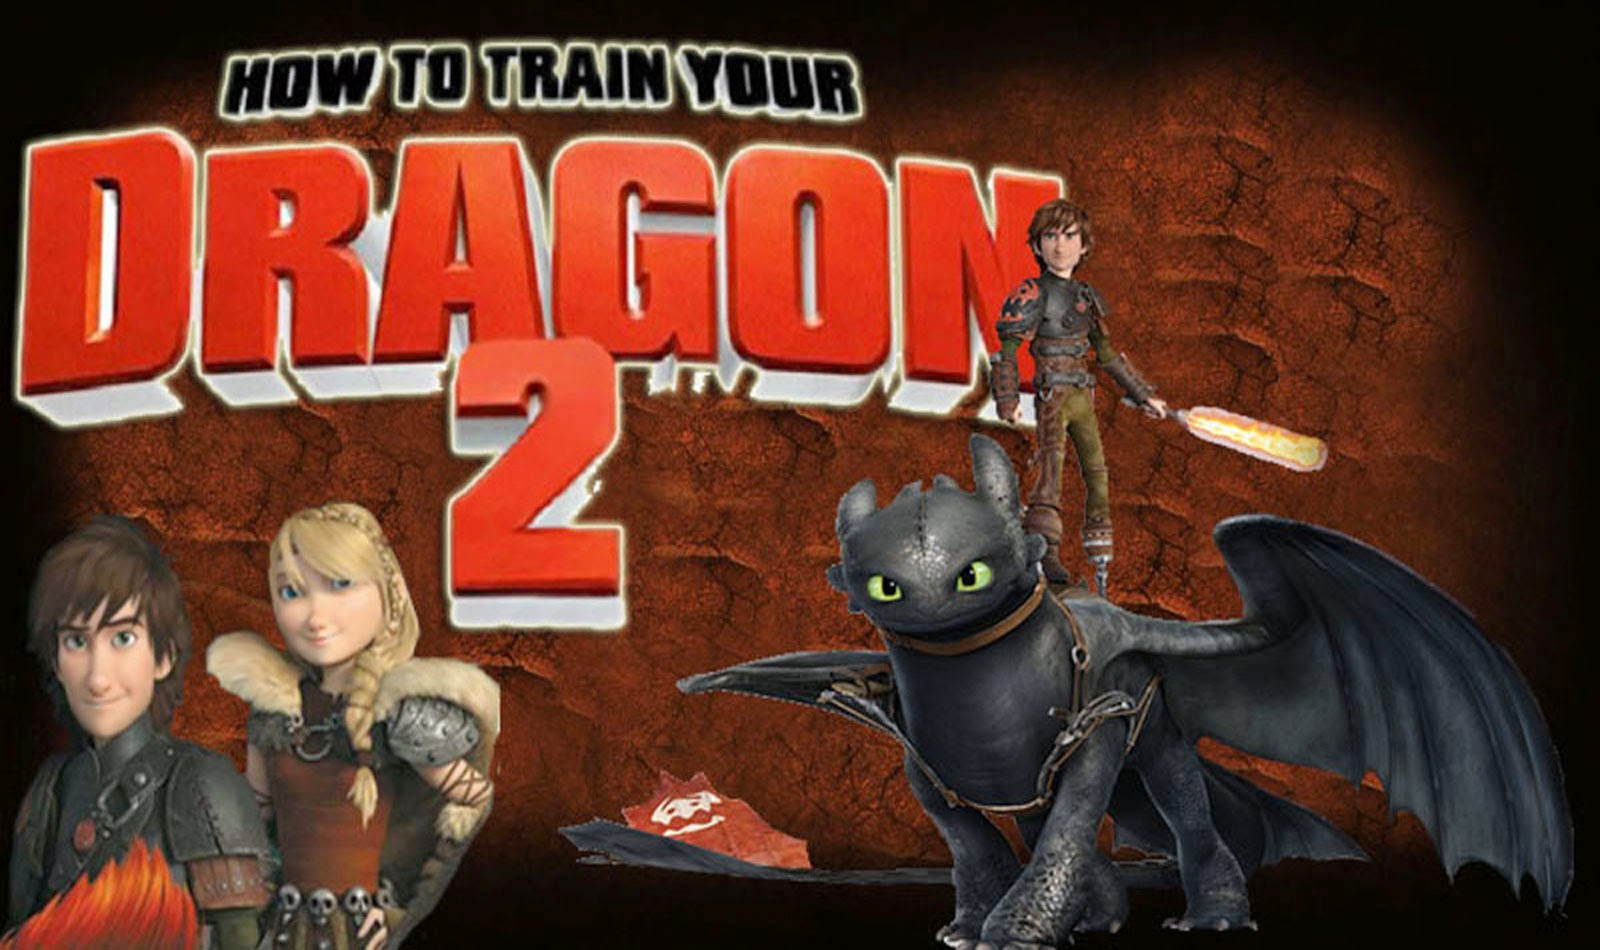 how to train your dragon 2 (2014) movie hd wallpapers